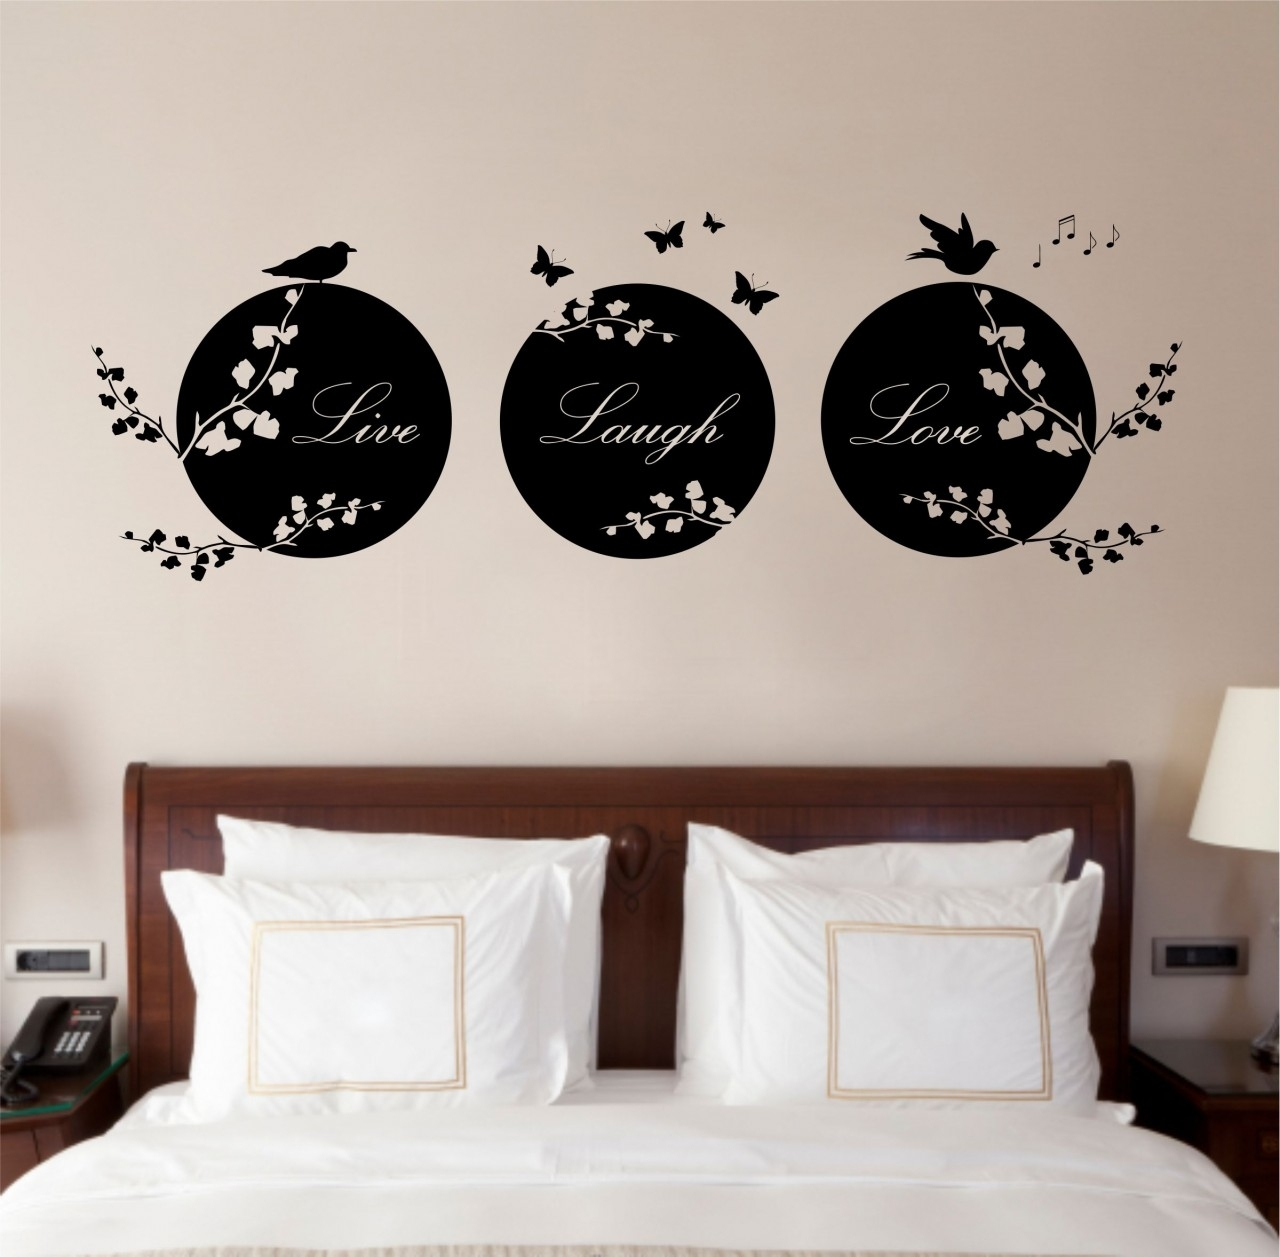 Vinyl Wall Art: Makeover For Your Homes – Pickndecor Intended For Current Vinyl Wall Art (View 14 of 15)